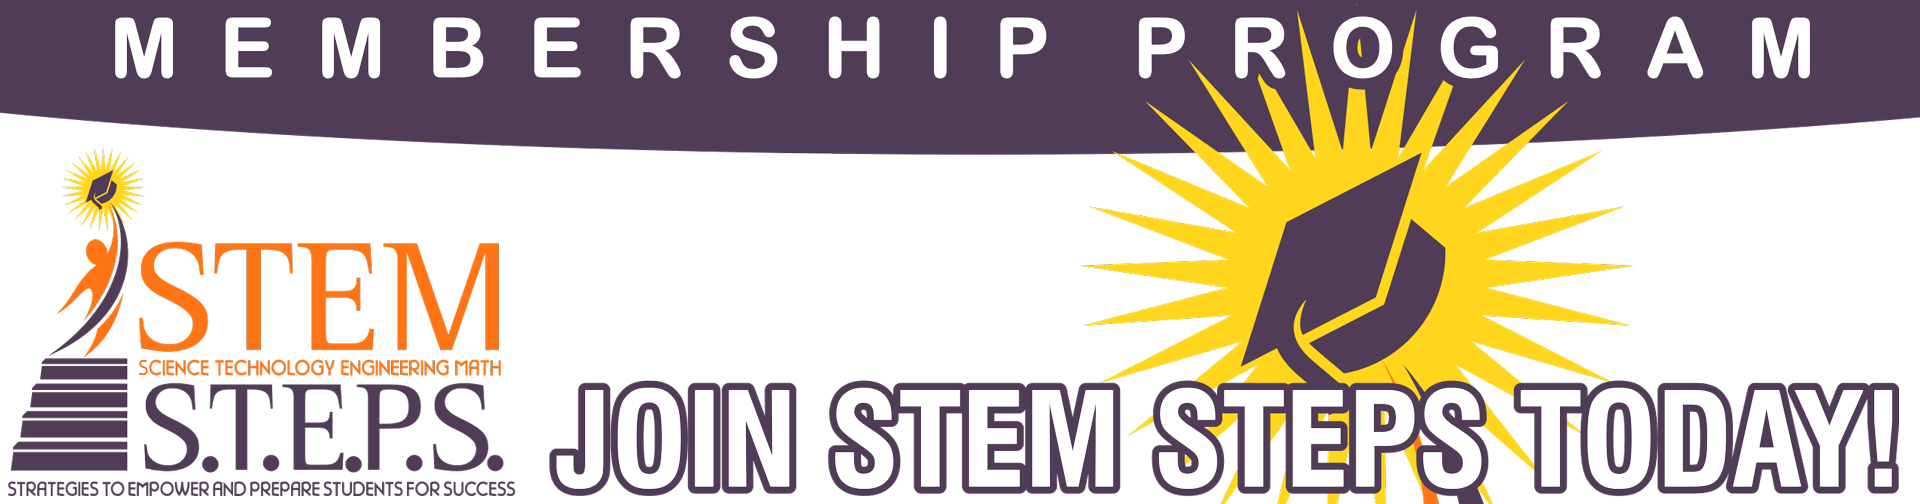 STEM S.T.E.P.S. 3.0 Membership Program - Join Now!